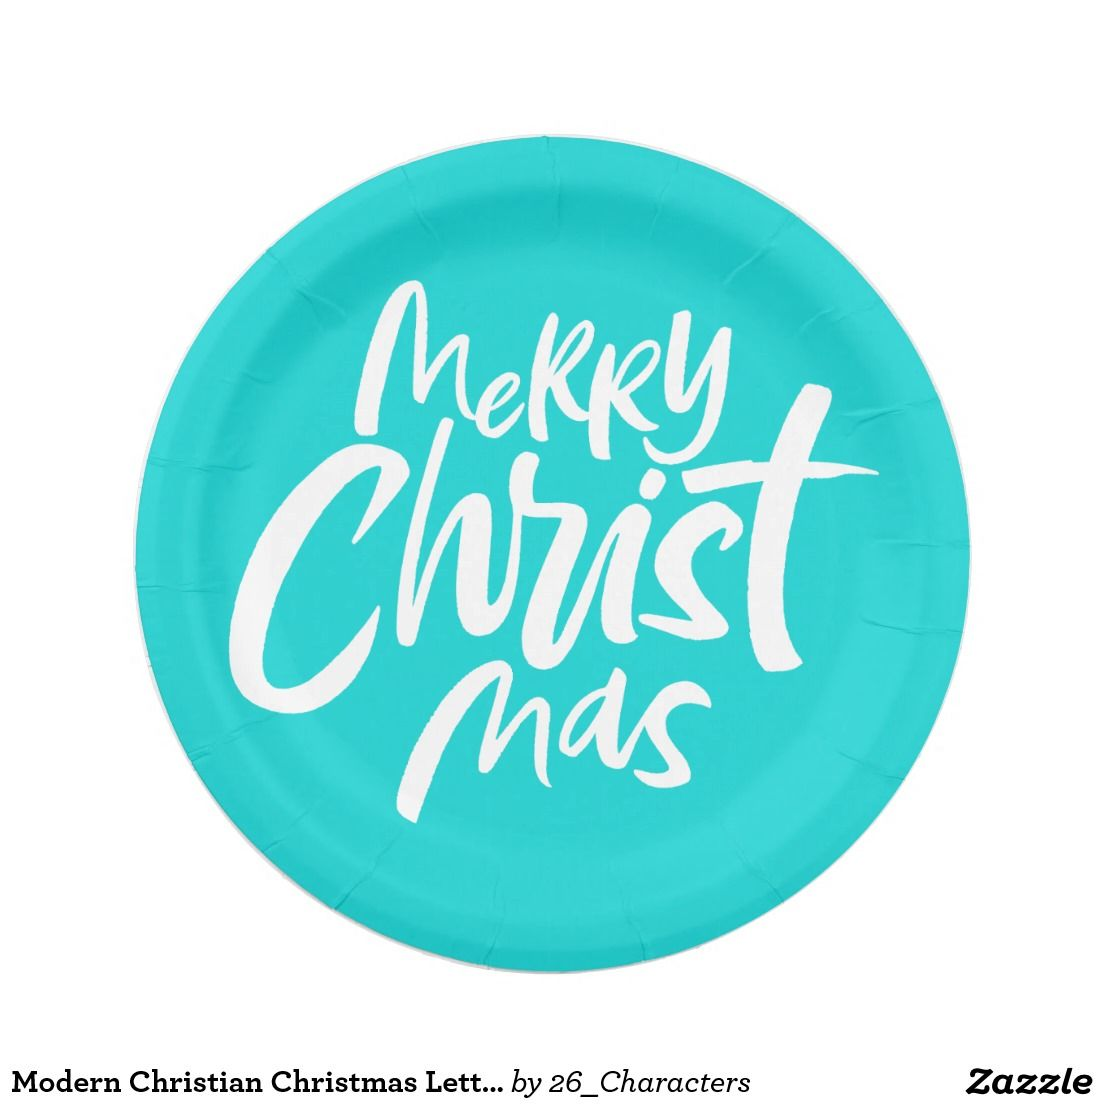 Christmas paper plates · Modern Christian Christmas Lettering Tiffany Blue  sc 1 st  Pinterest : tiffany blue paper plates - pezcame.com